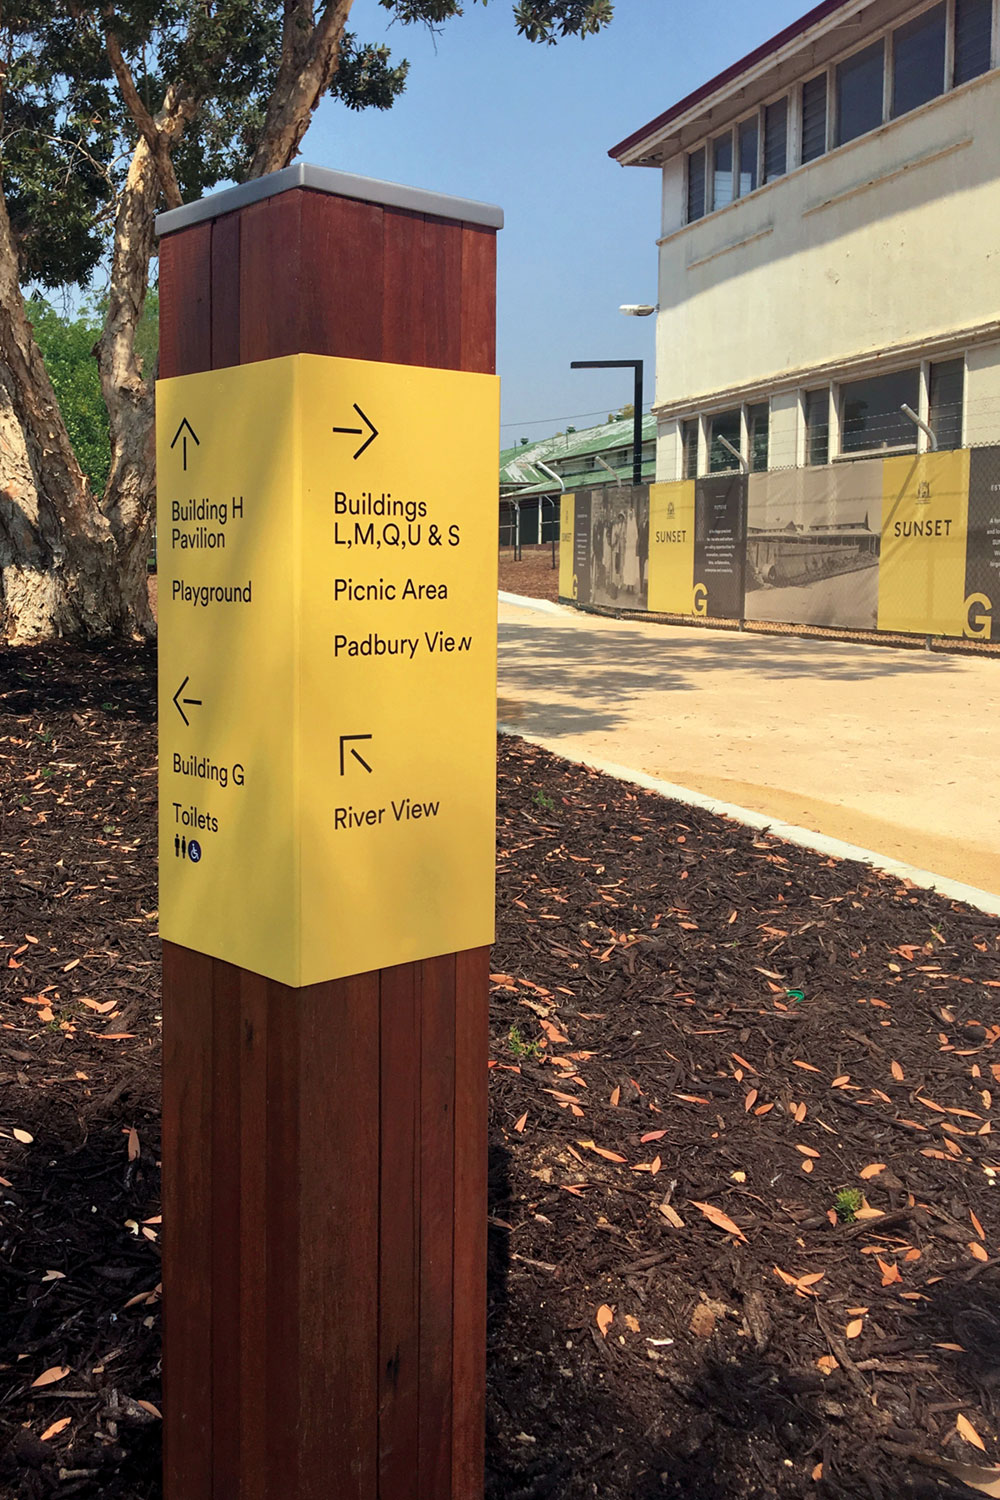 Sunset Heritage Precinct – Wayfinding Signage and Hoarding